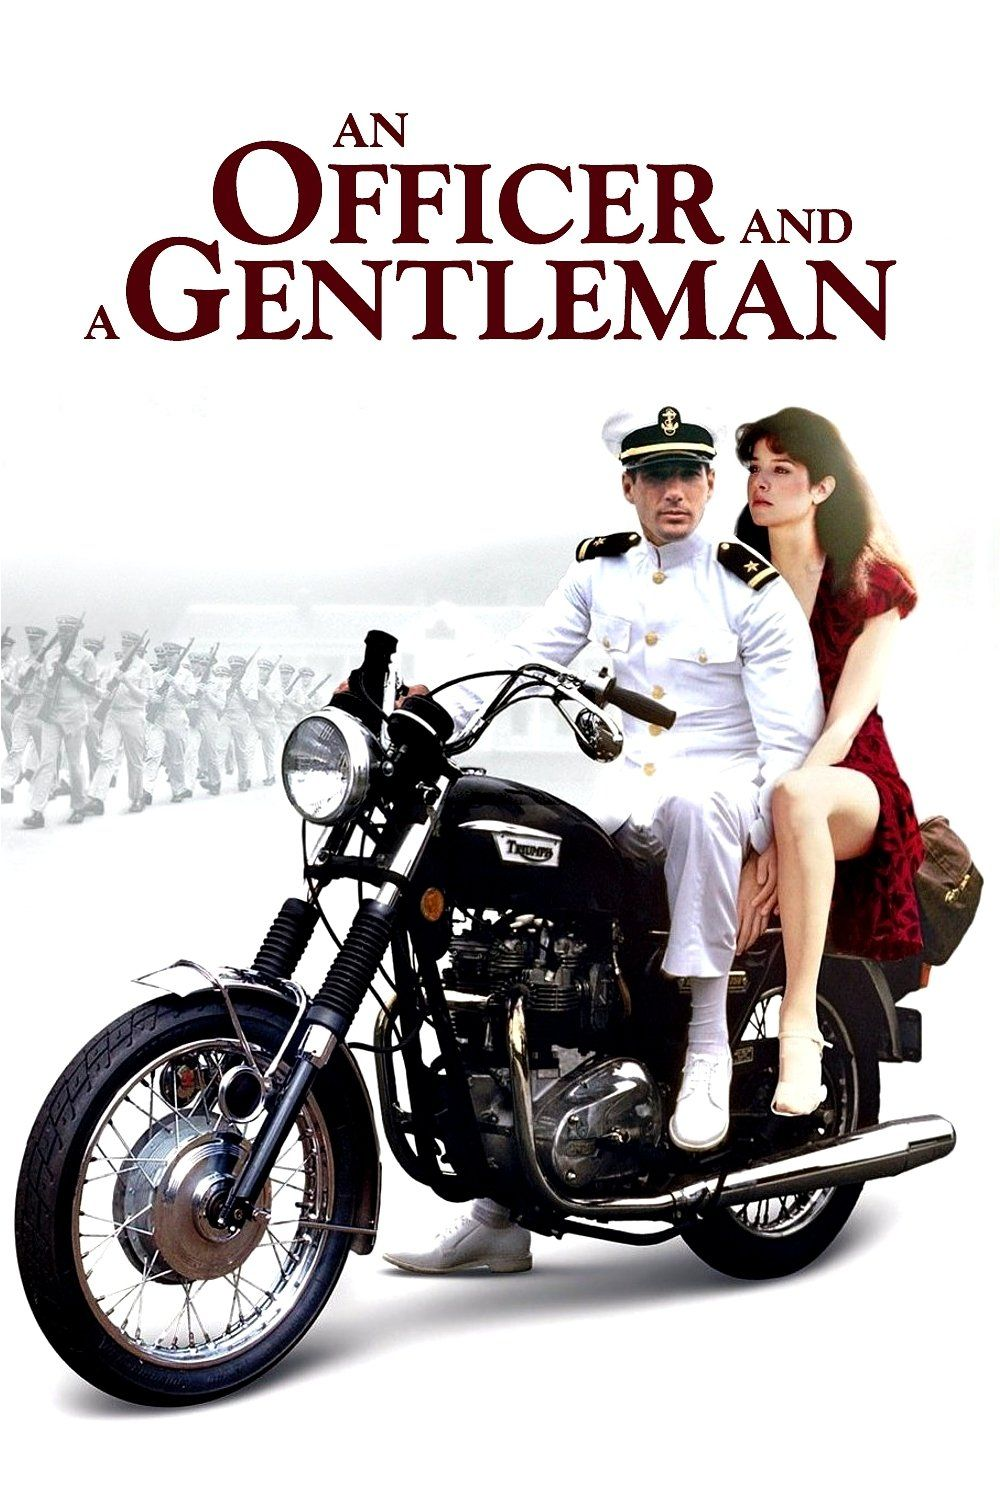 Watch An Officer And A Gentleman Full Hd Movie Online Hd Movies Tv Series Online Fullhd Fullmovie Hdvix Movie720pzack Mayo Is A Young Man Who